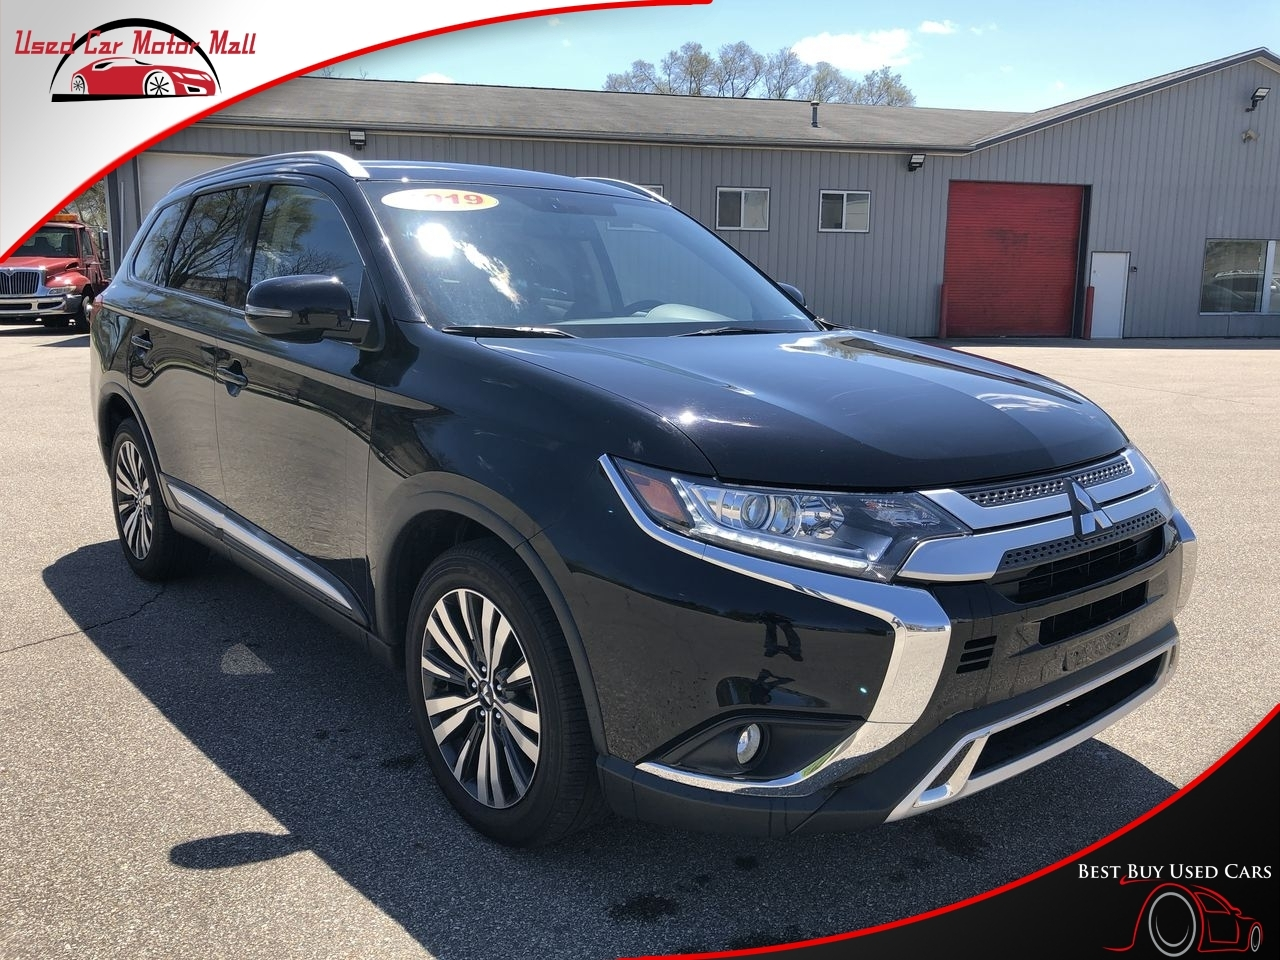 2018 Mitsubishi Outlander Sport SE 2.4, 002900, Photo 1